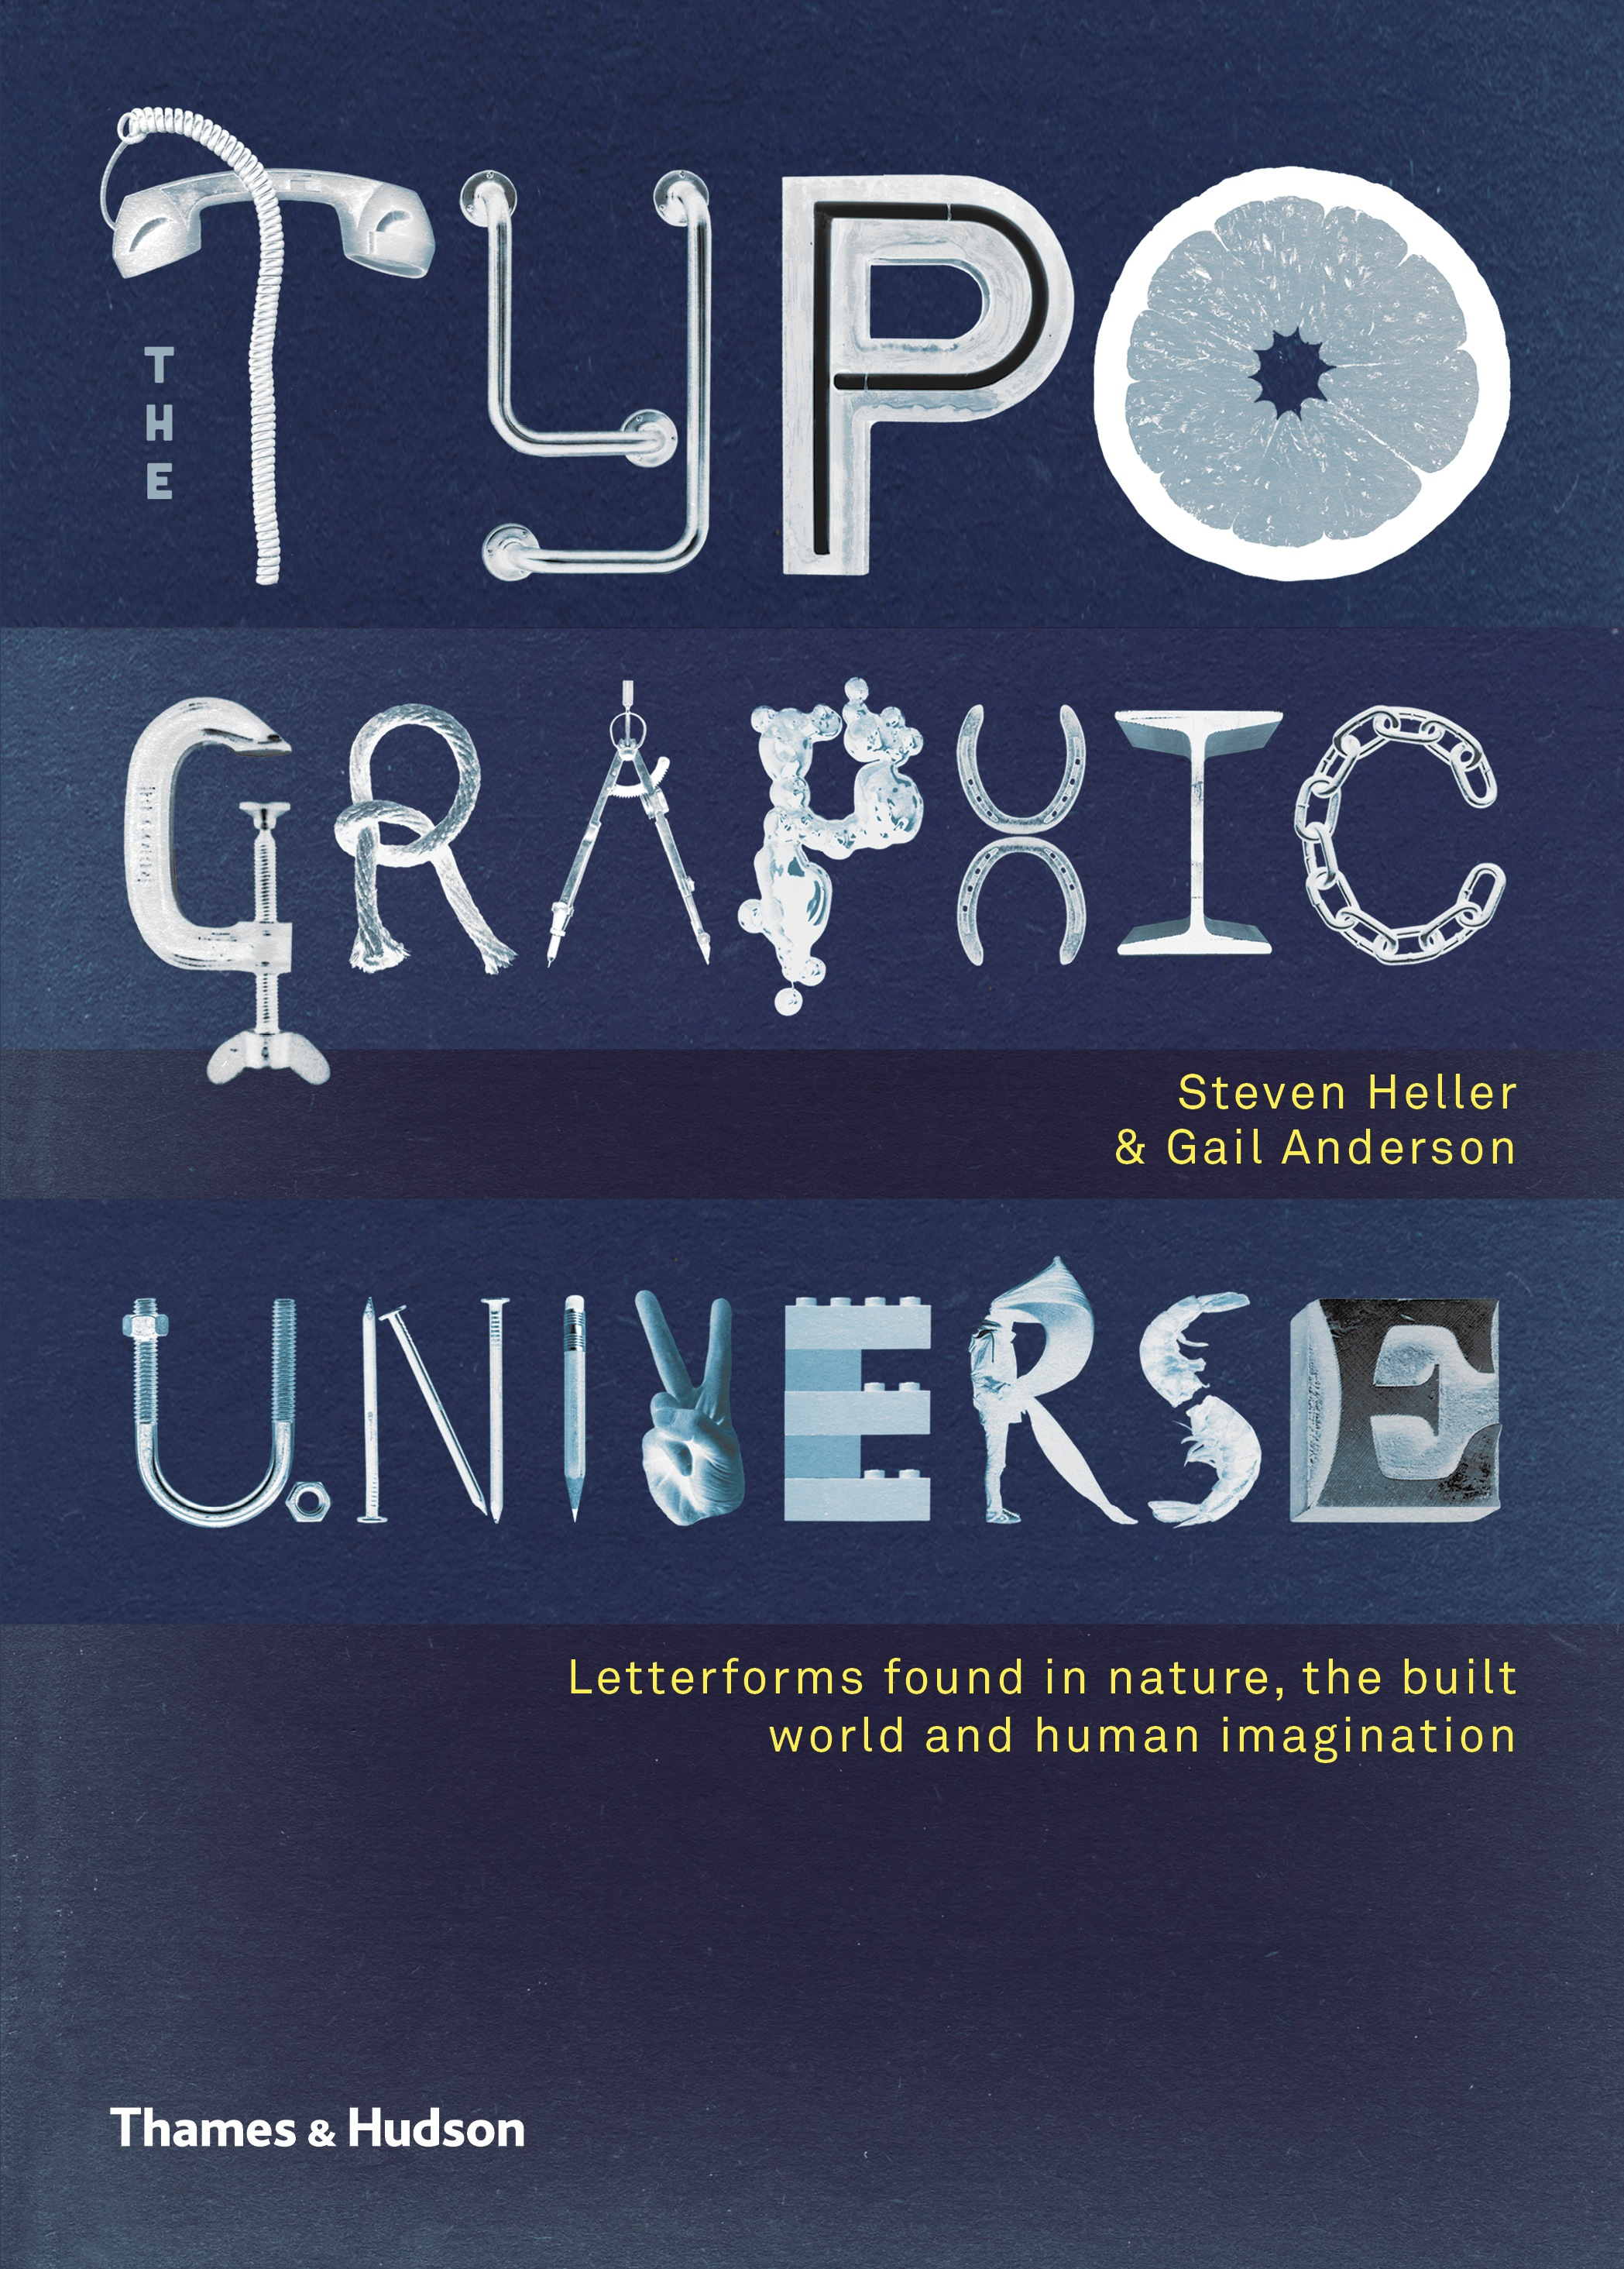 Book Launch: Typographic Universe by Steven Heller and Gail Anderson